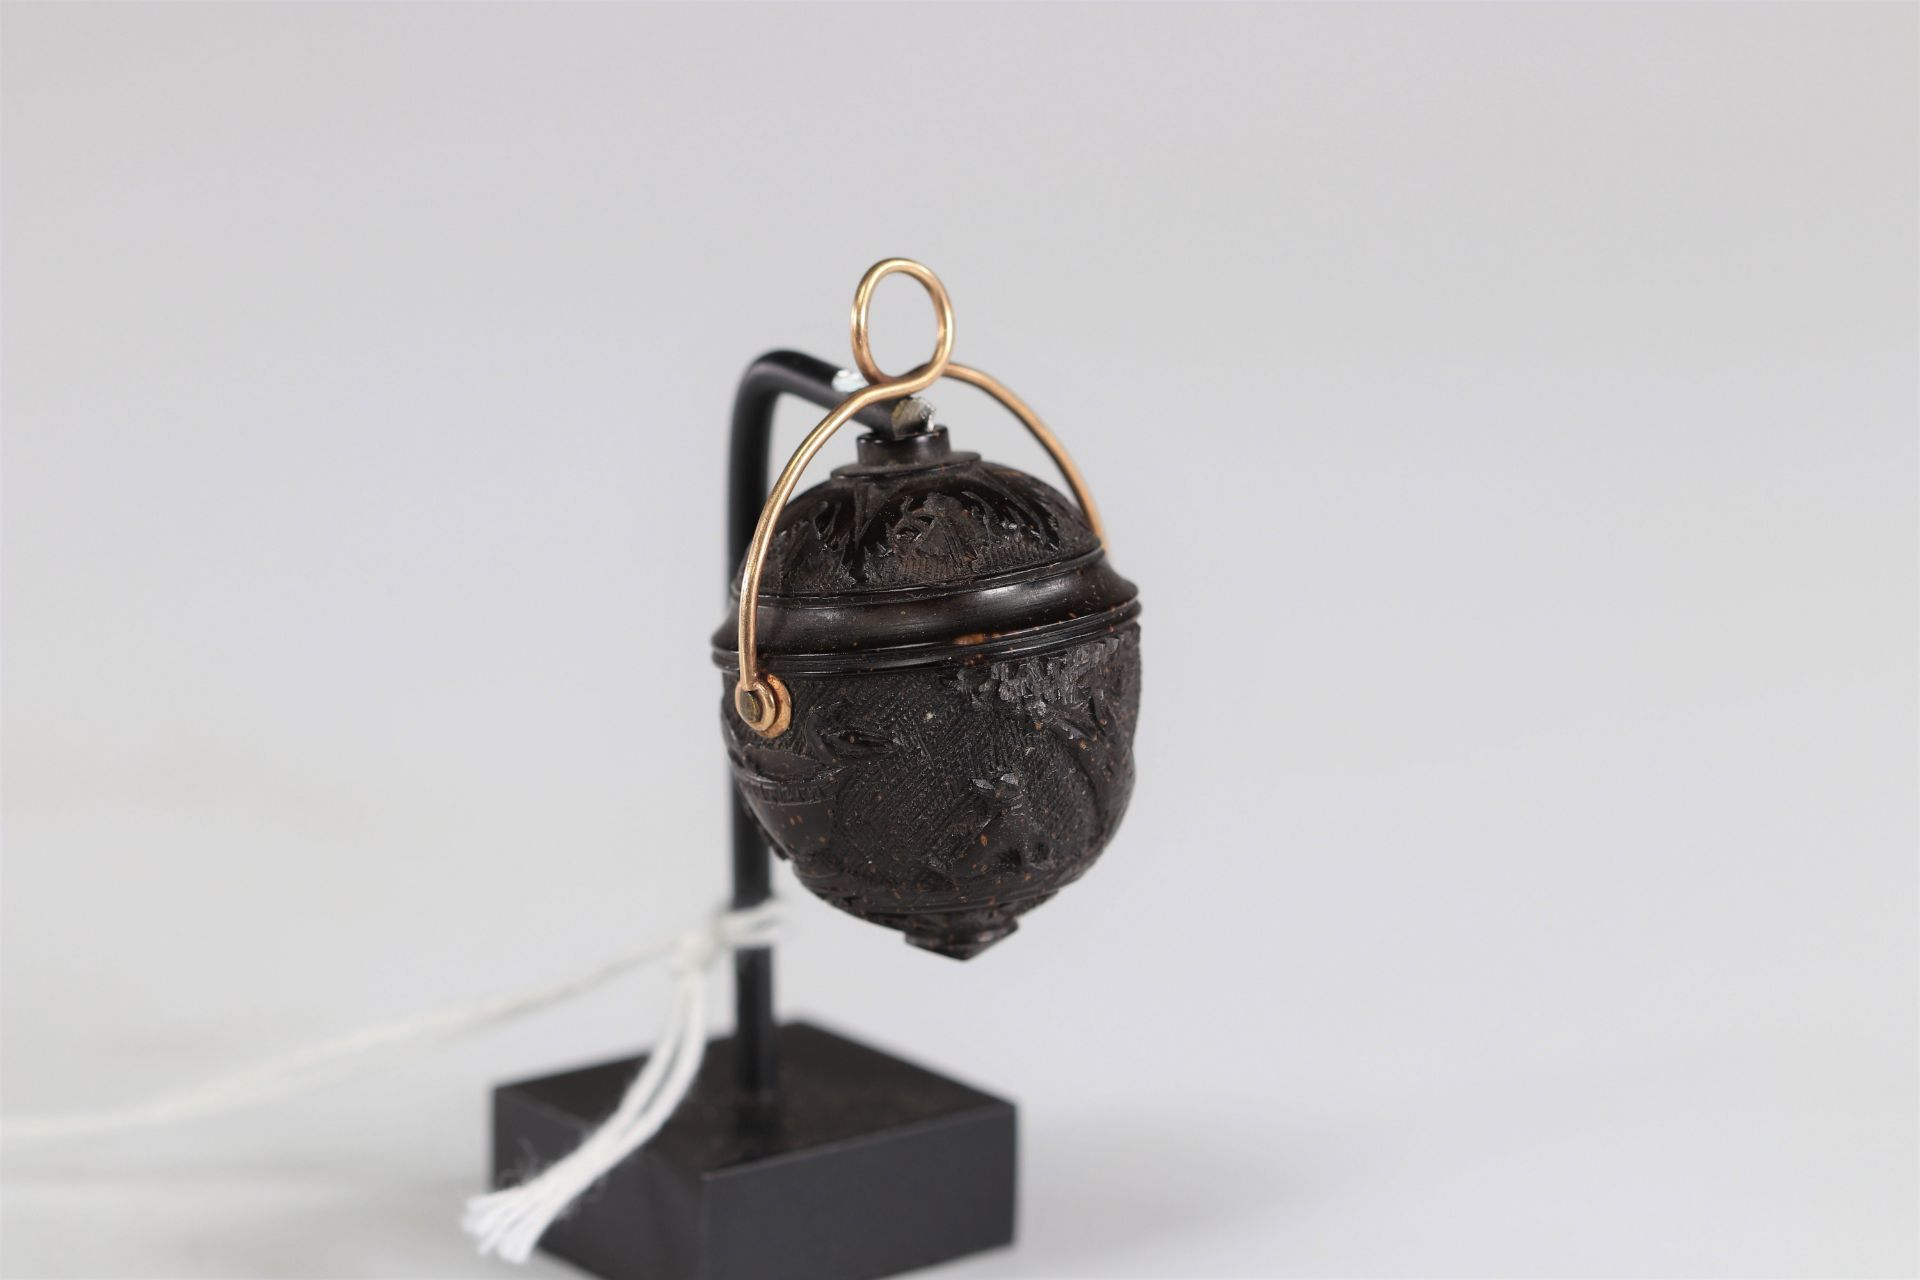 Miniature carved walnut with the arms of Louis XV - Image 2 of 2